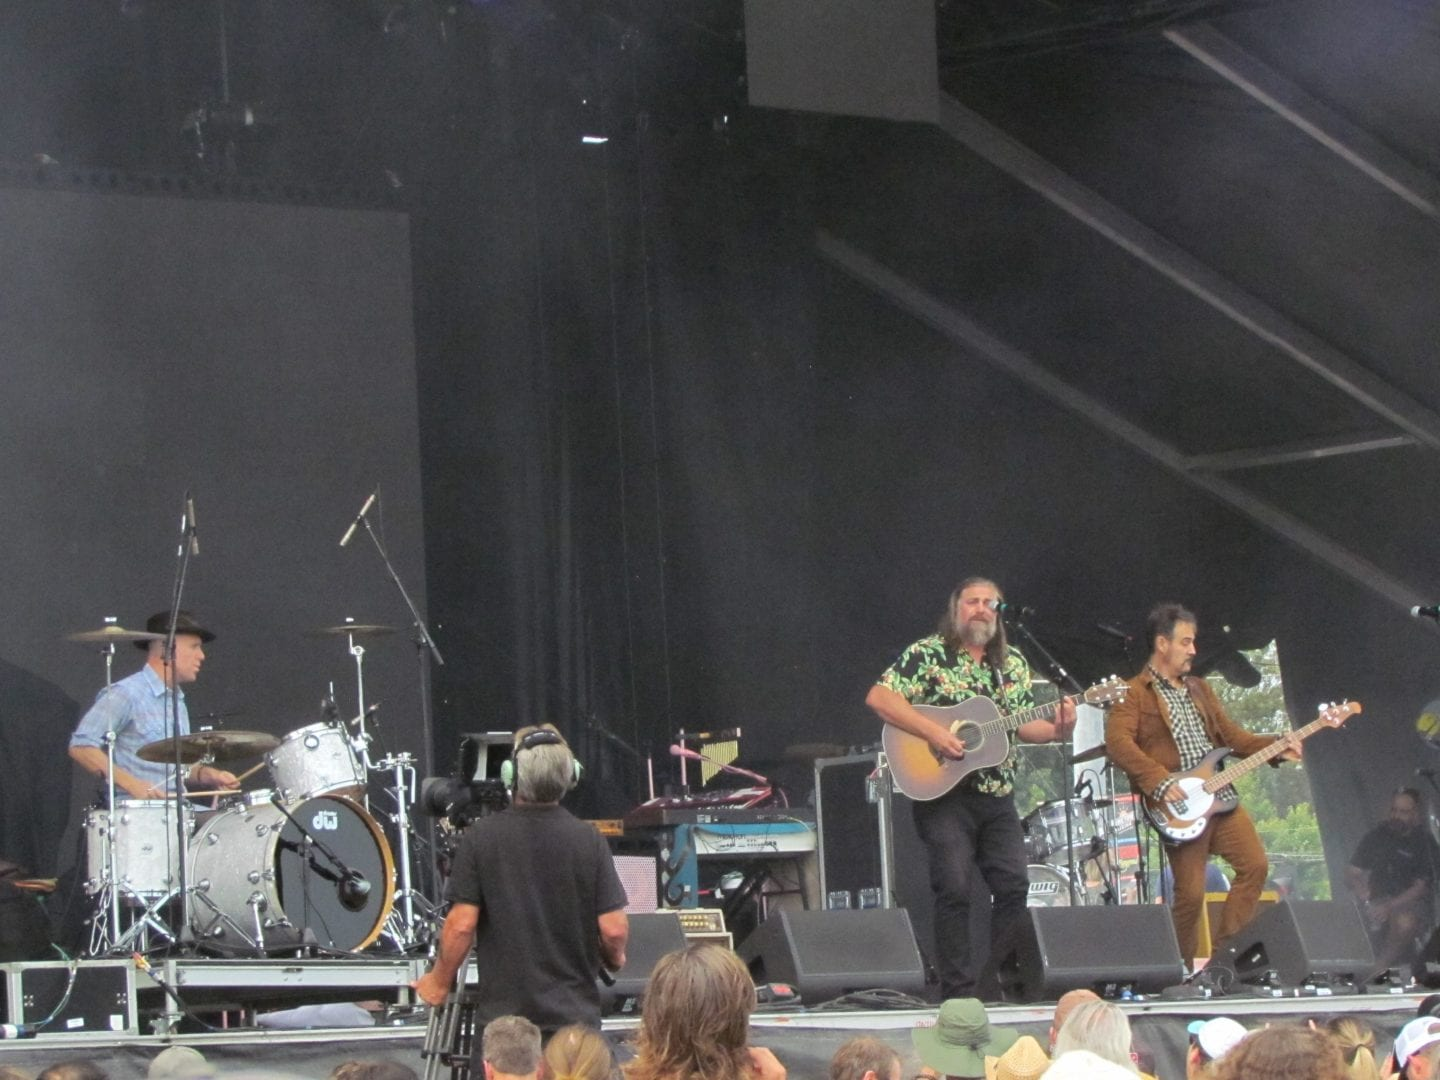 The White Buffalo performing on stage